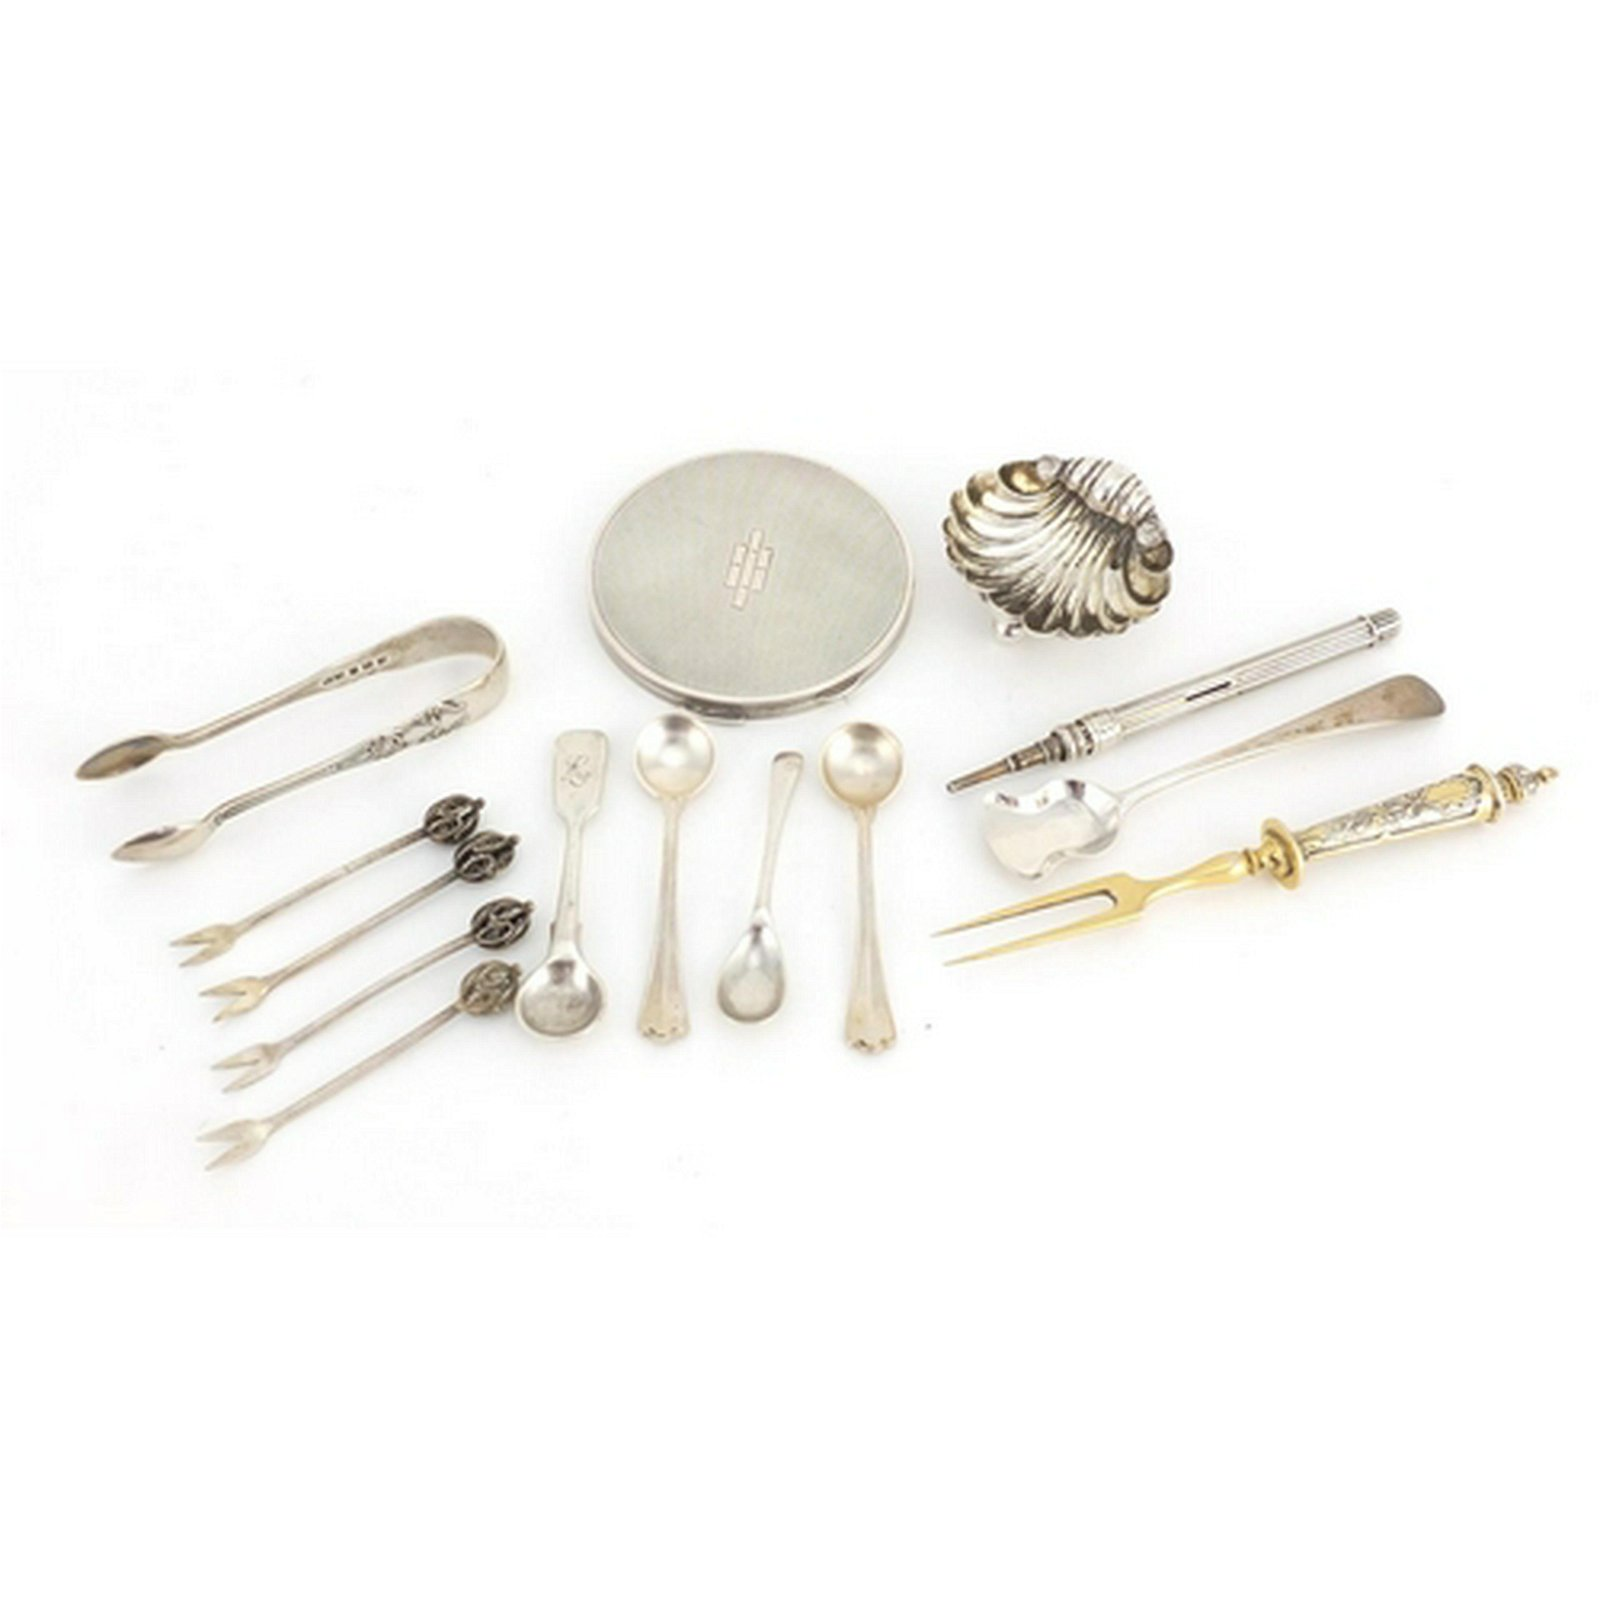 Mostly silver objects including a circular compact,